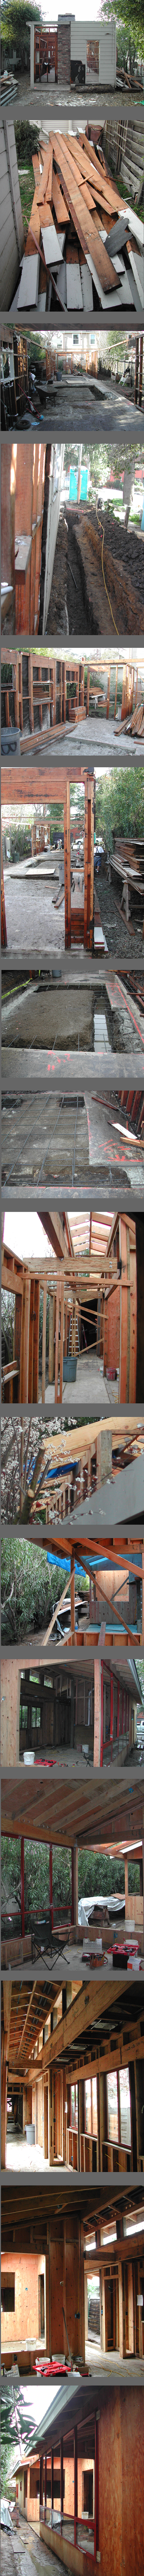 Faculty House, ENR architects with Topos Architects, Palo Alto, CA 94306 - DEMO-FRAMING